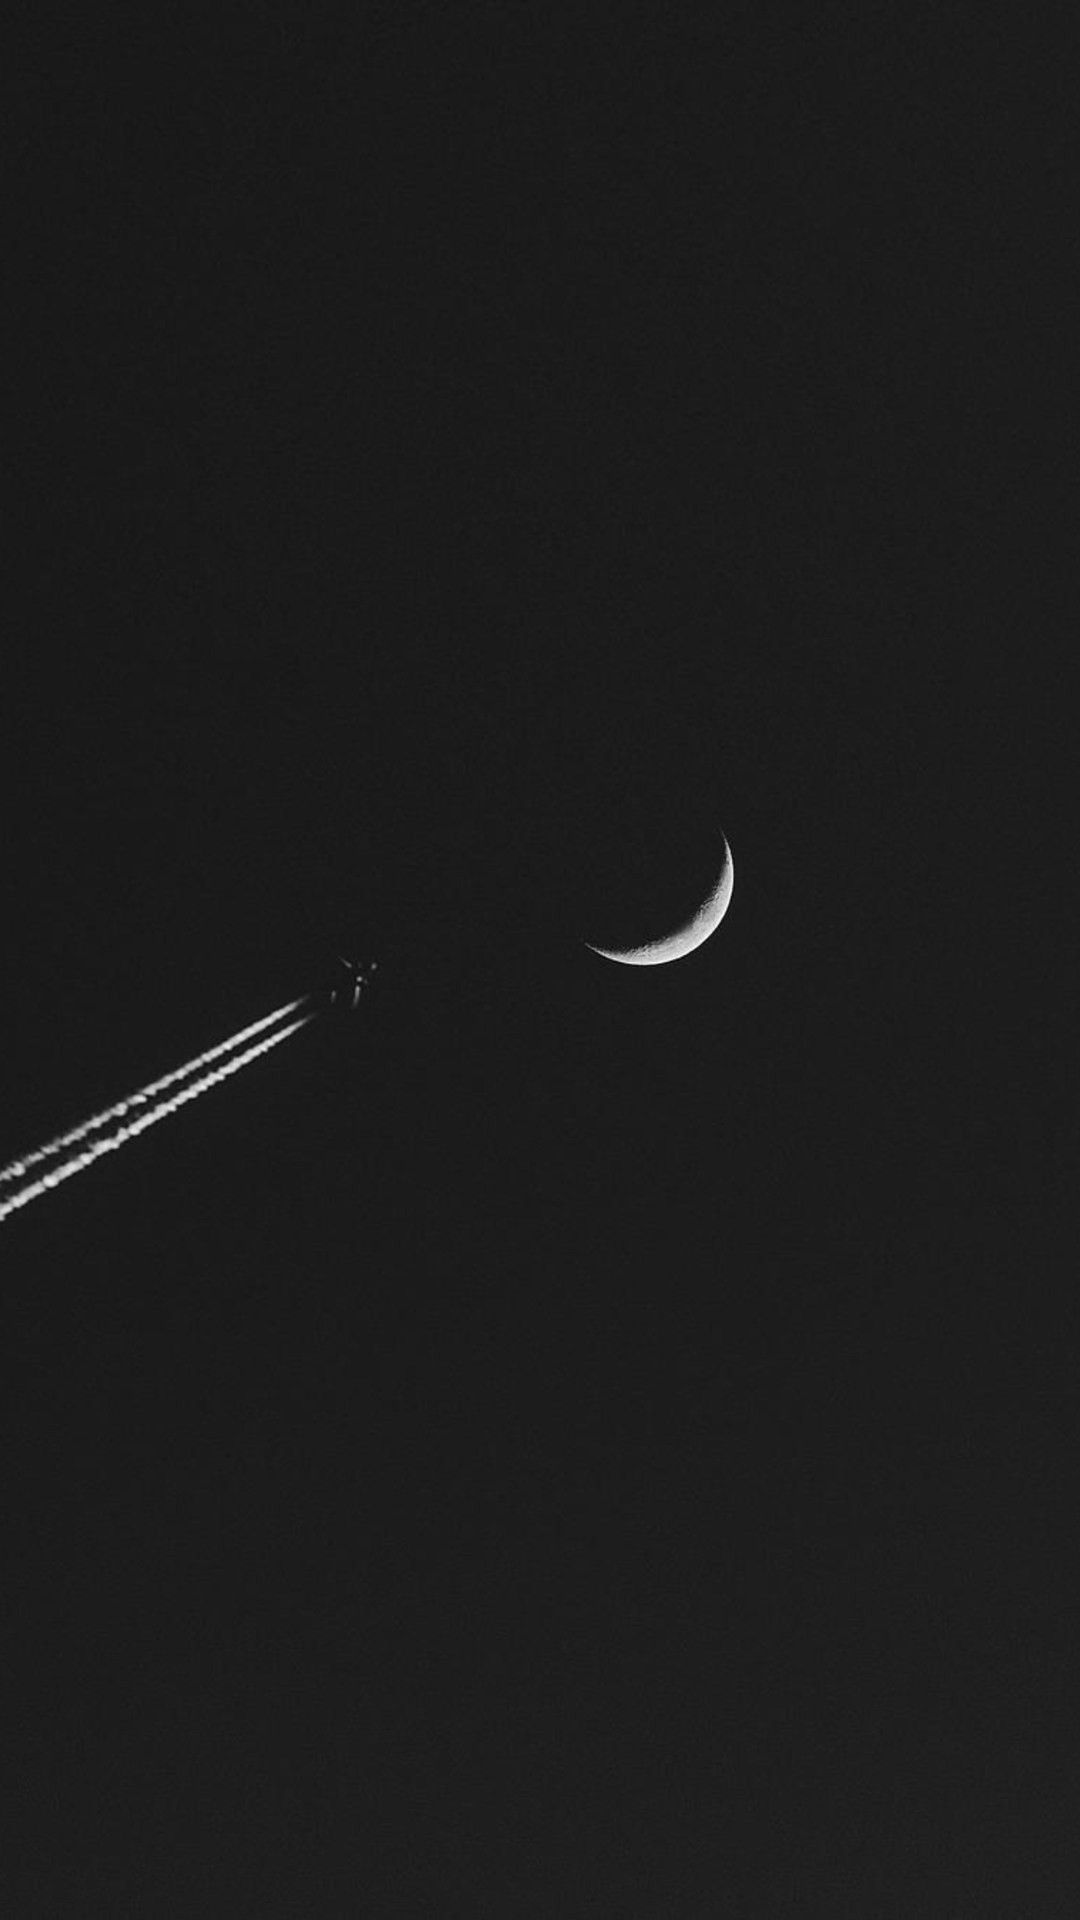 65 Minimalist Black Phone Android Iphone Desktop Hd Backgrounds Wallpapers 1080p 4k 1080x1920 2021